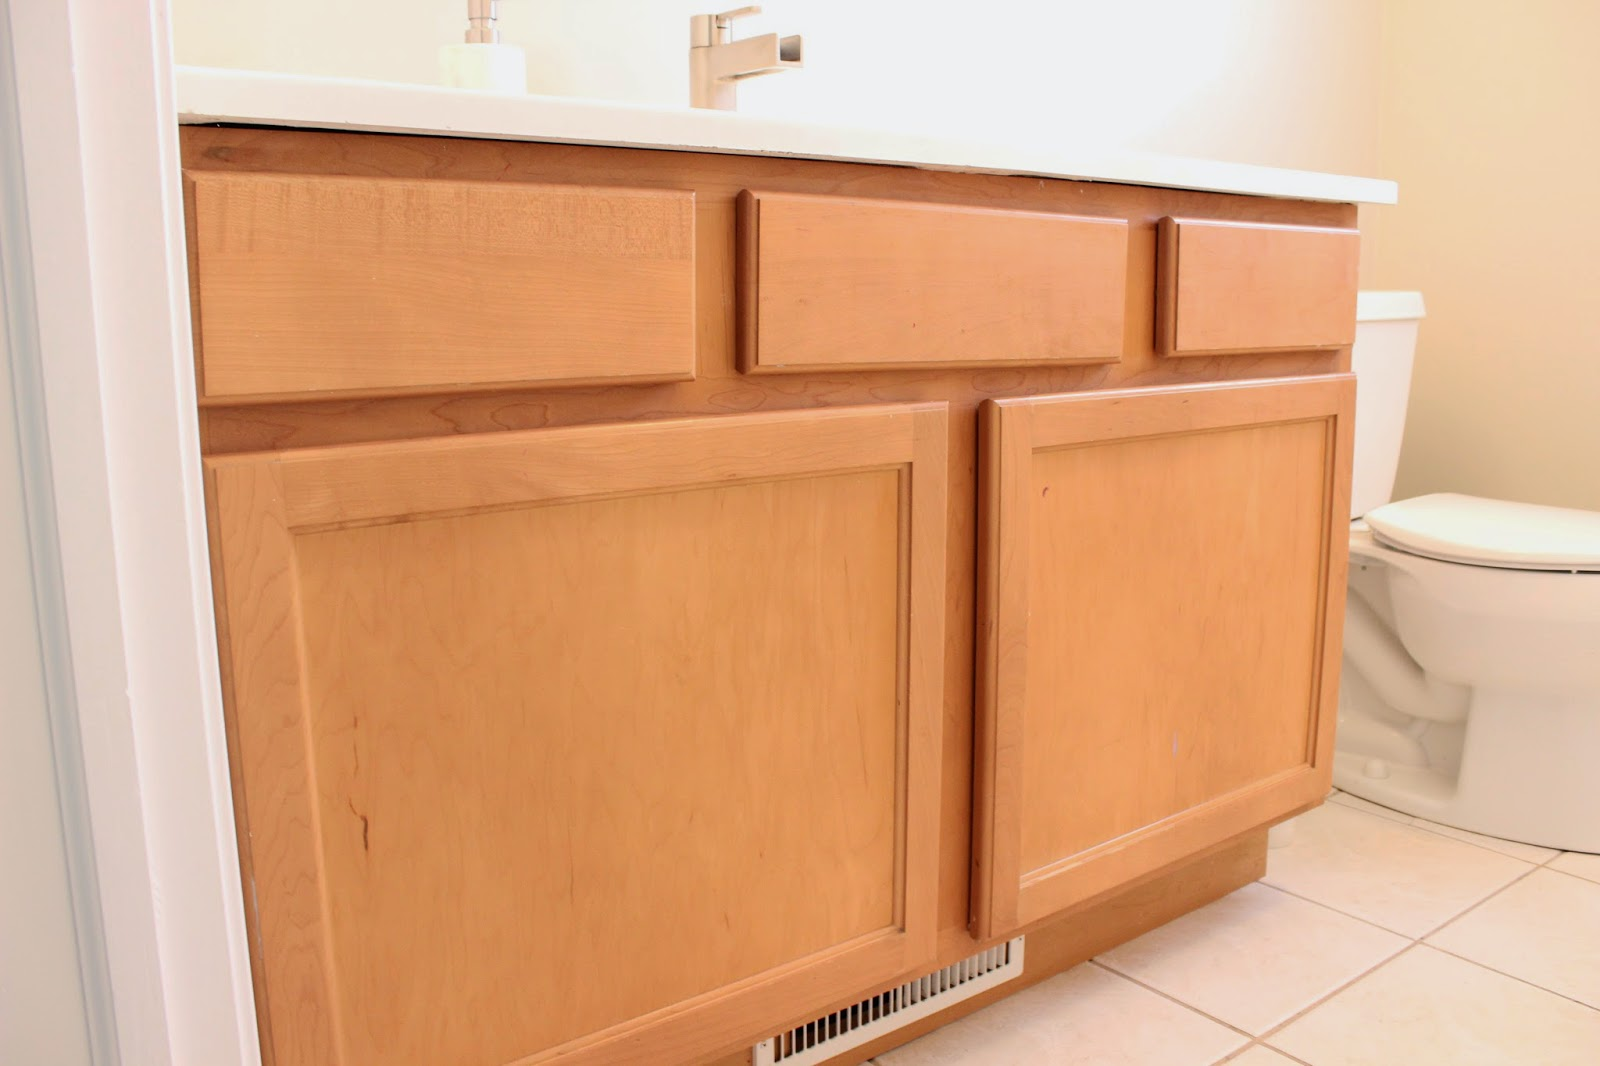 Painted Bathroom Cabinets Its A Grandville Life Diy Painted Bathroom Cabinets